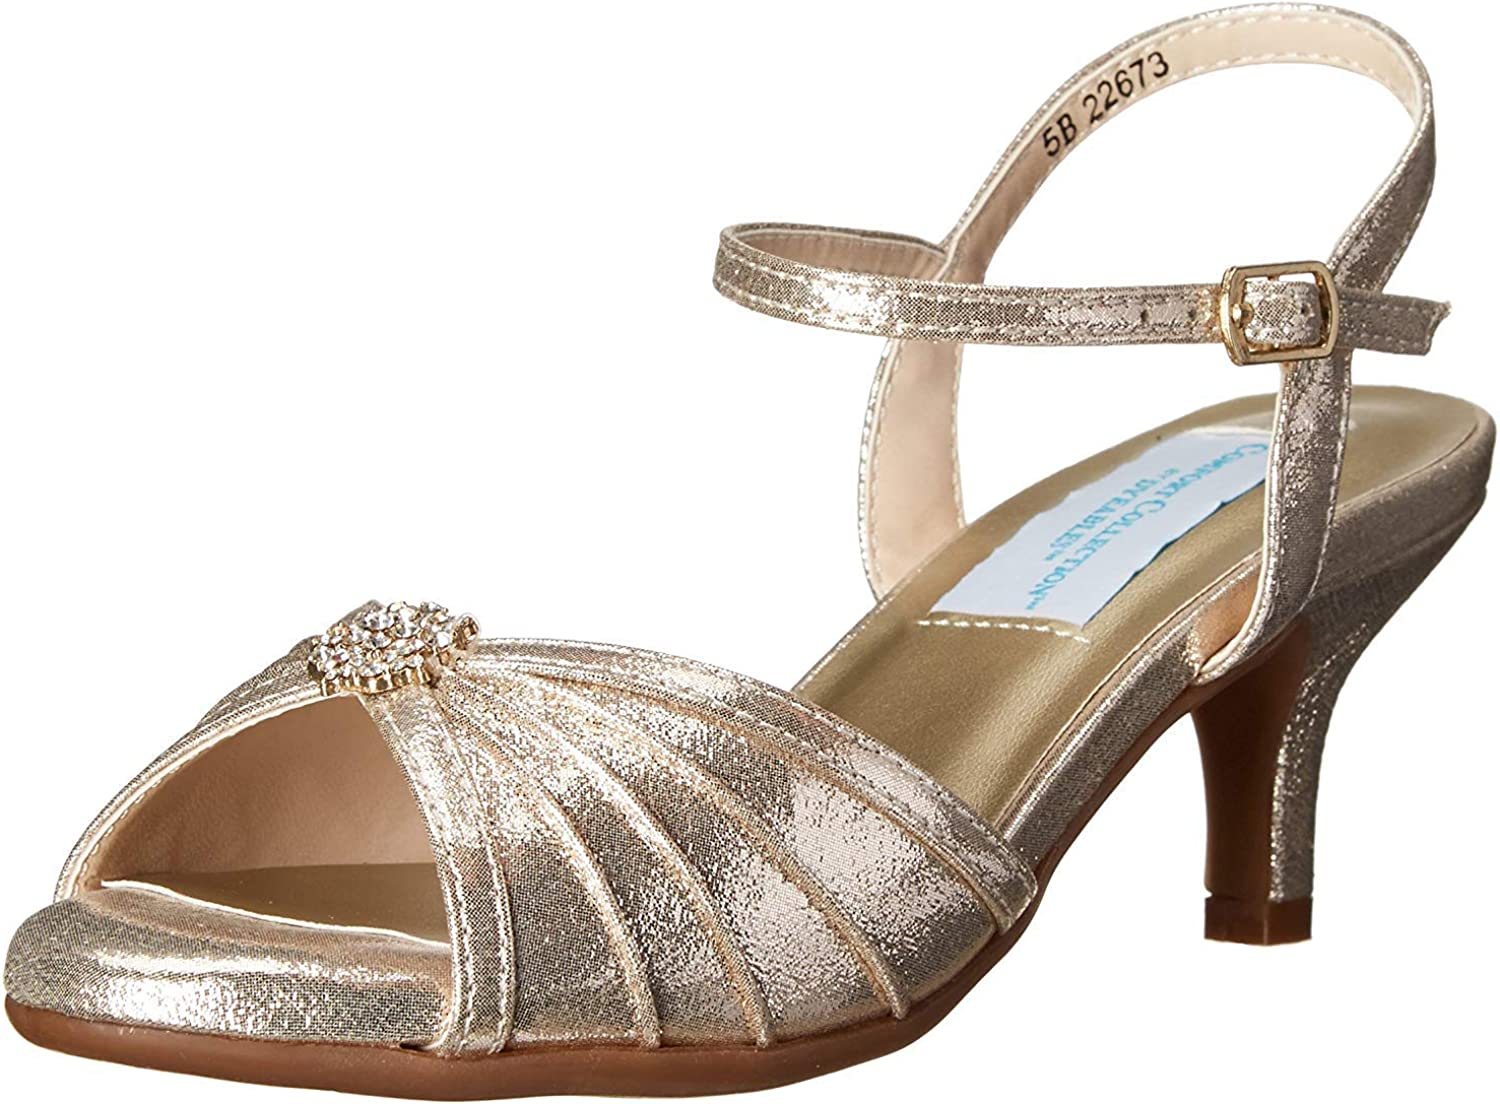 Dyeables Women's Award Kelsey Sandal Dress Safety and trust